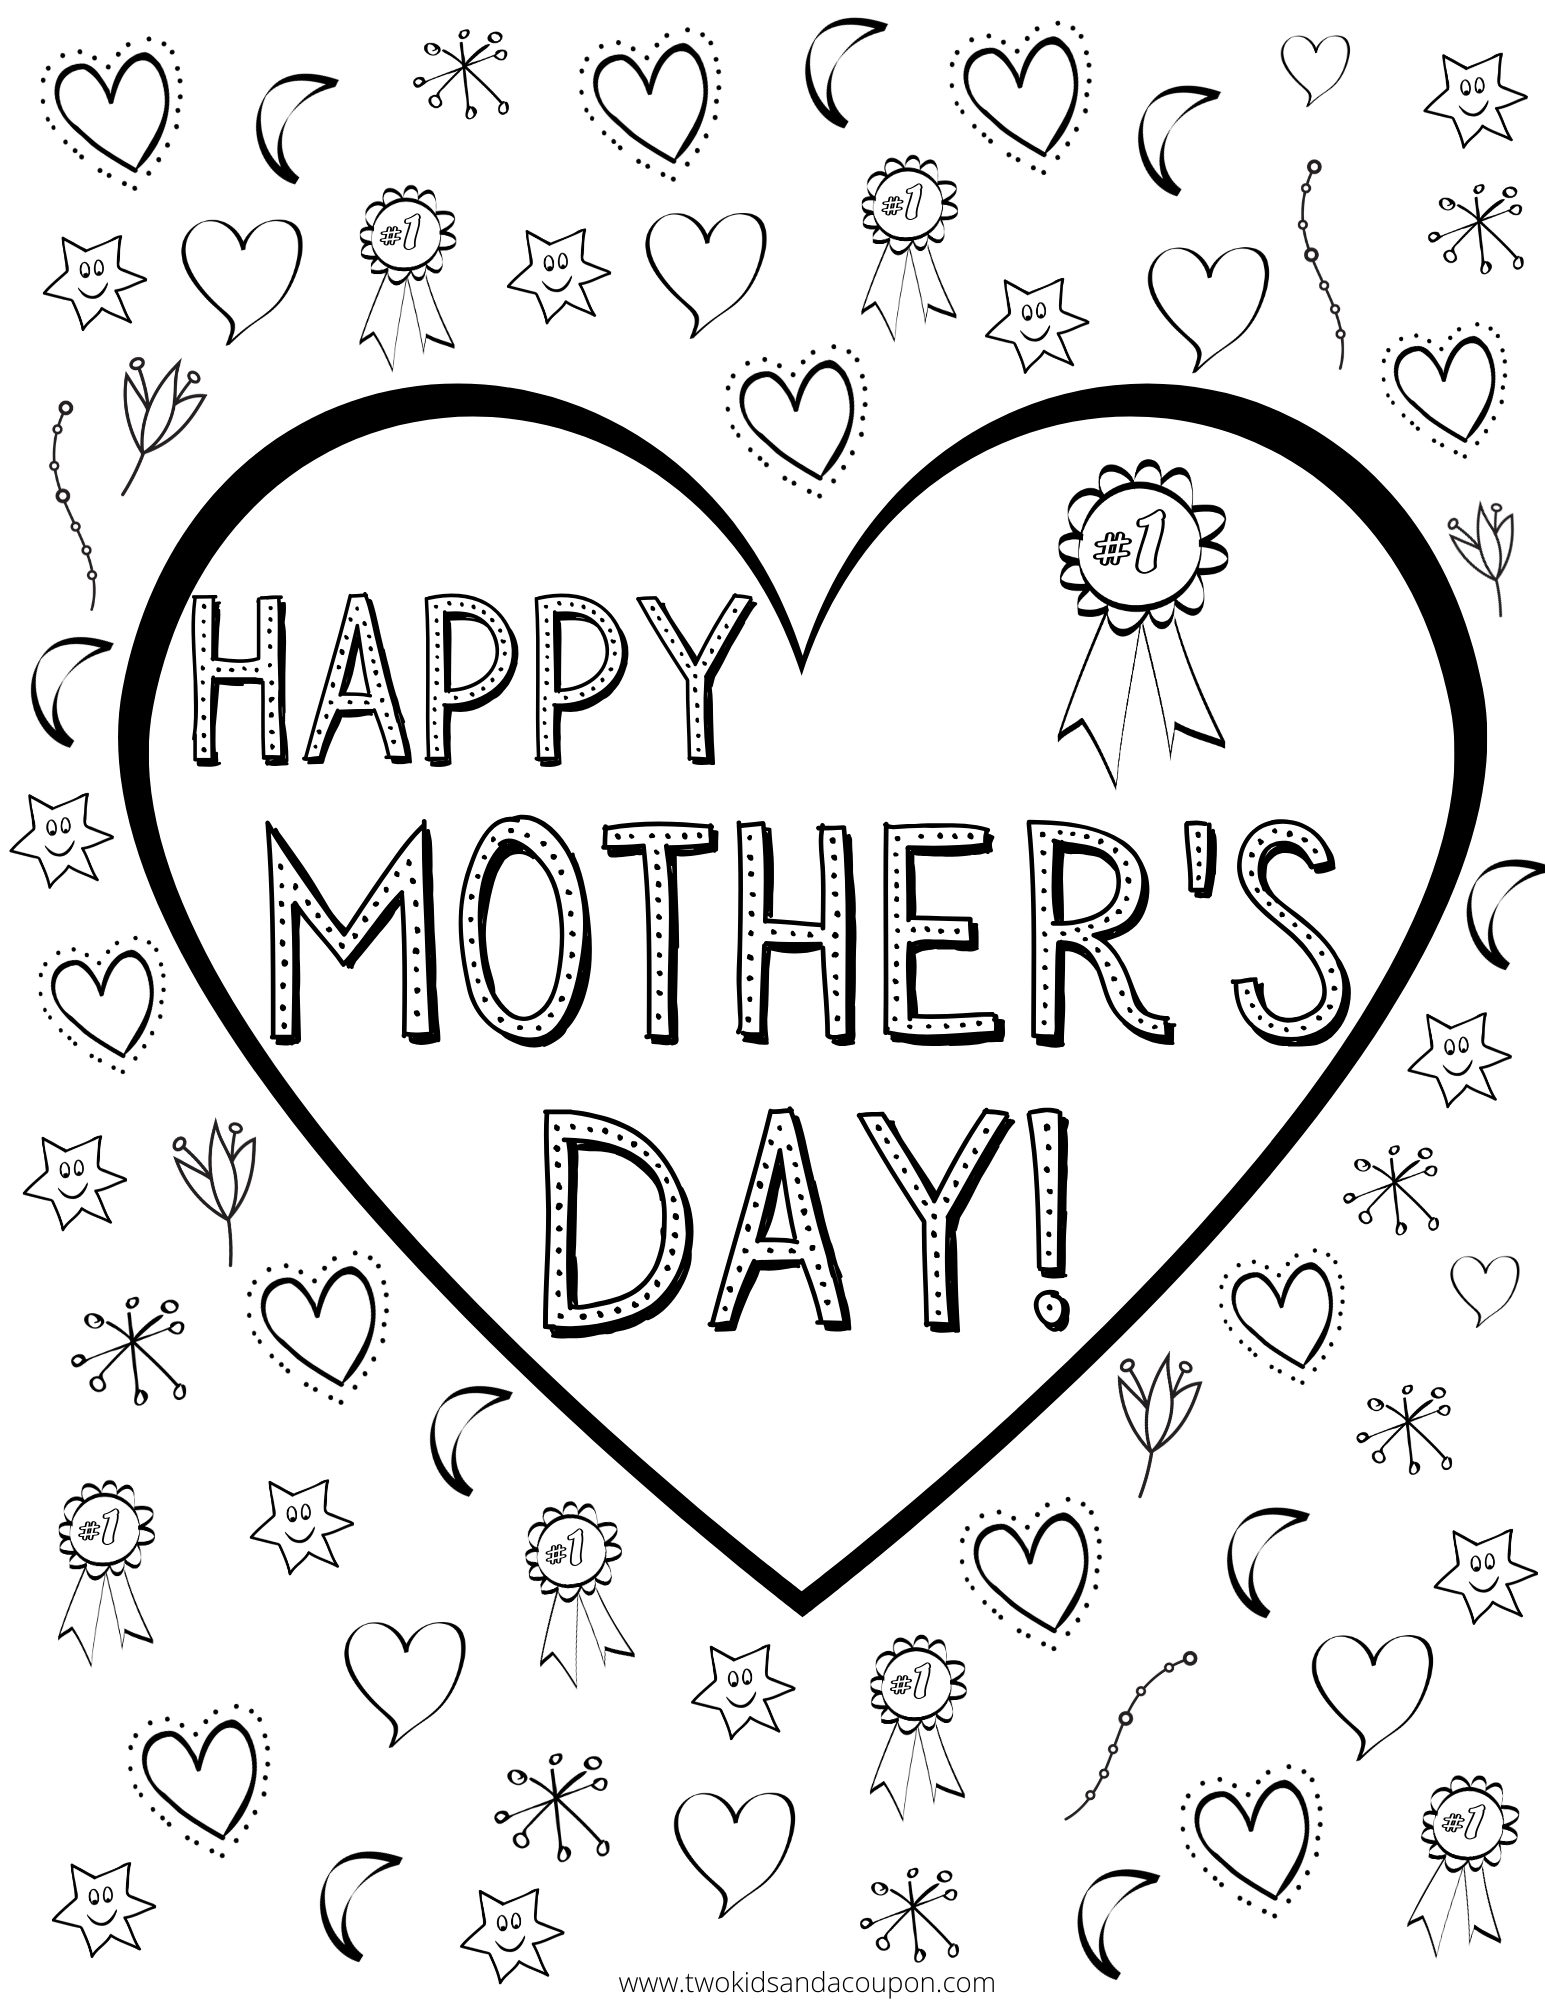 free coloring pages mothers day wallpaper free download happy mothers day coloring pages pages day mothers coloring free